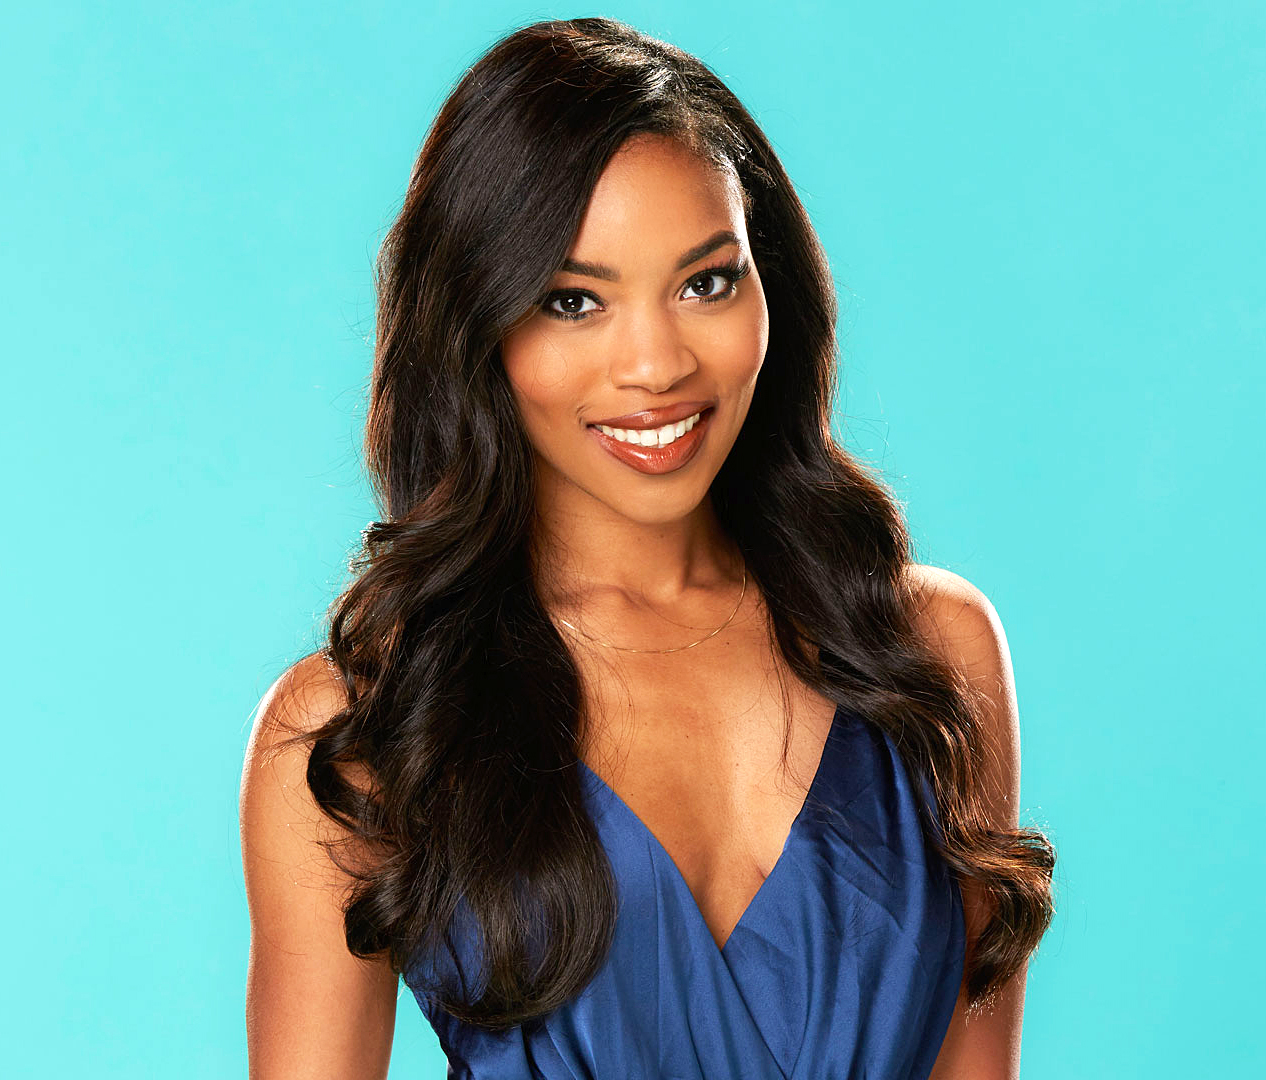 Zakiyah Everette Big Brother Suicidal